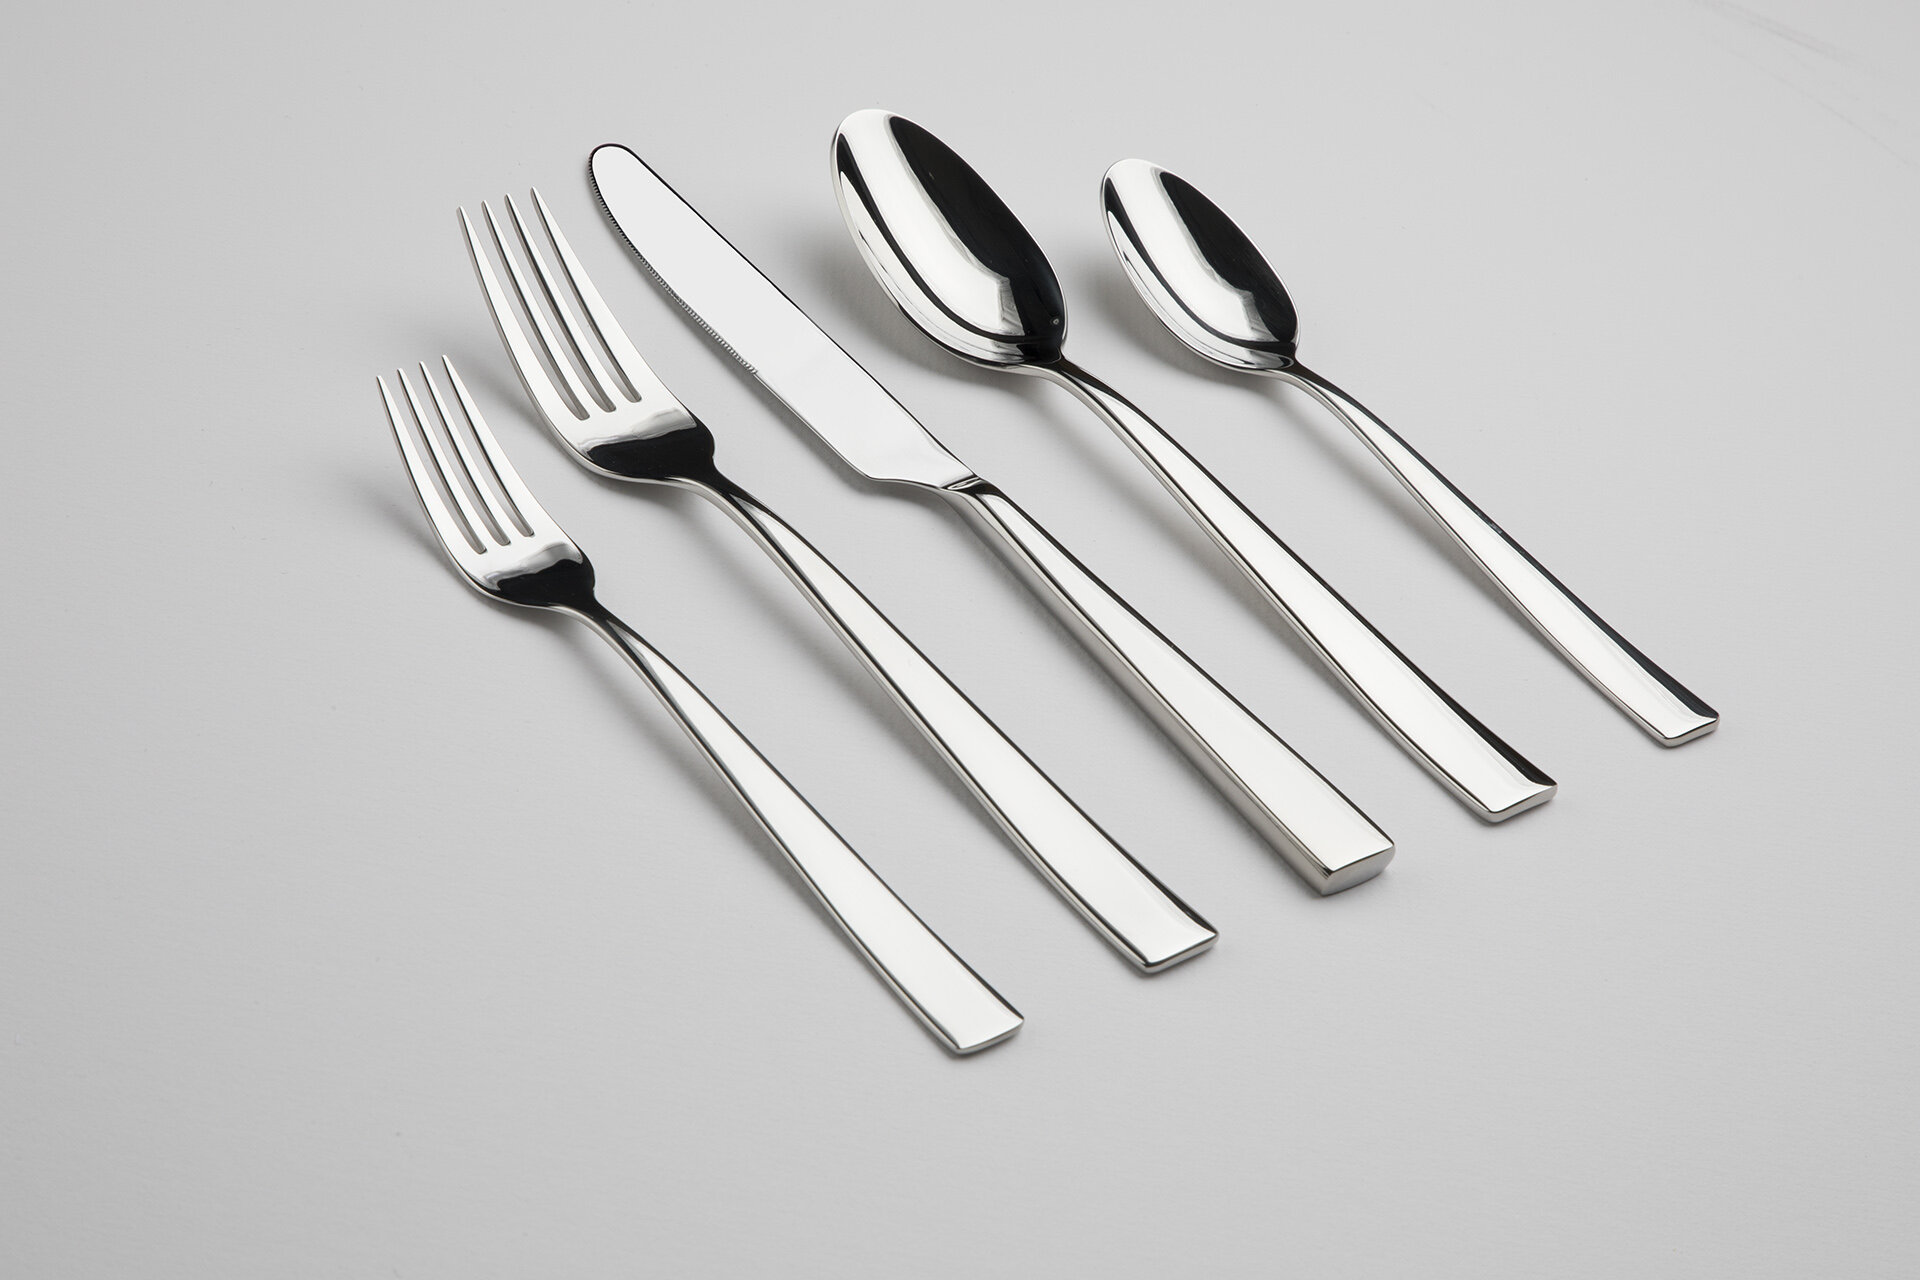 Gourmet Settings Resto 60 Piece 1810 Stainless Steel Flatware Set